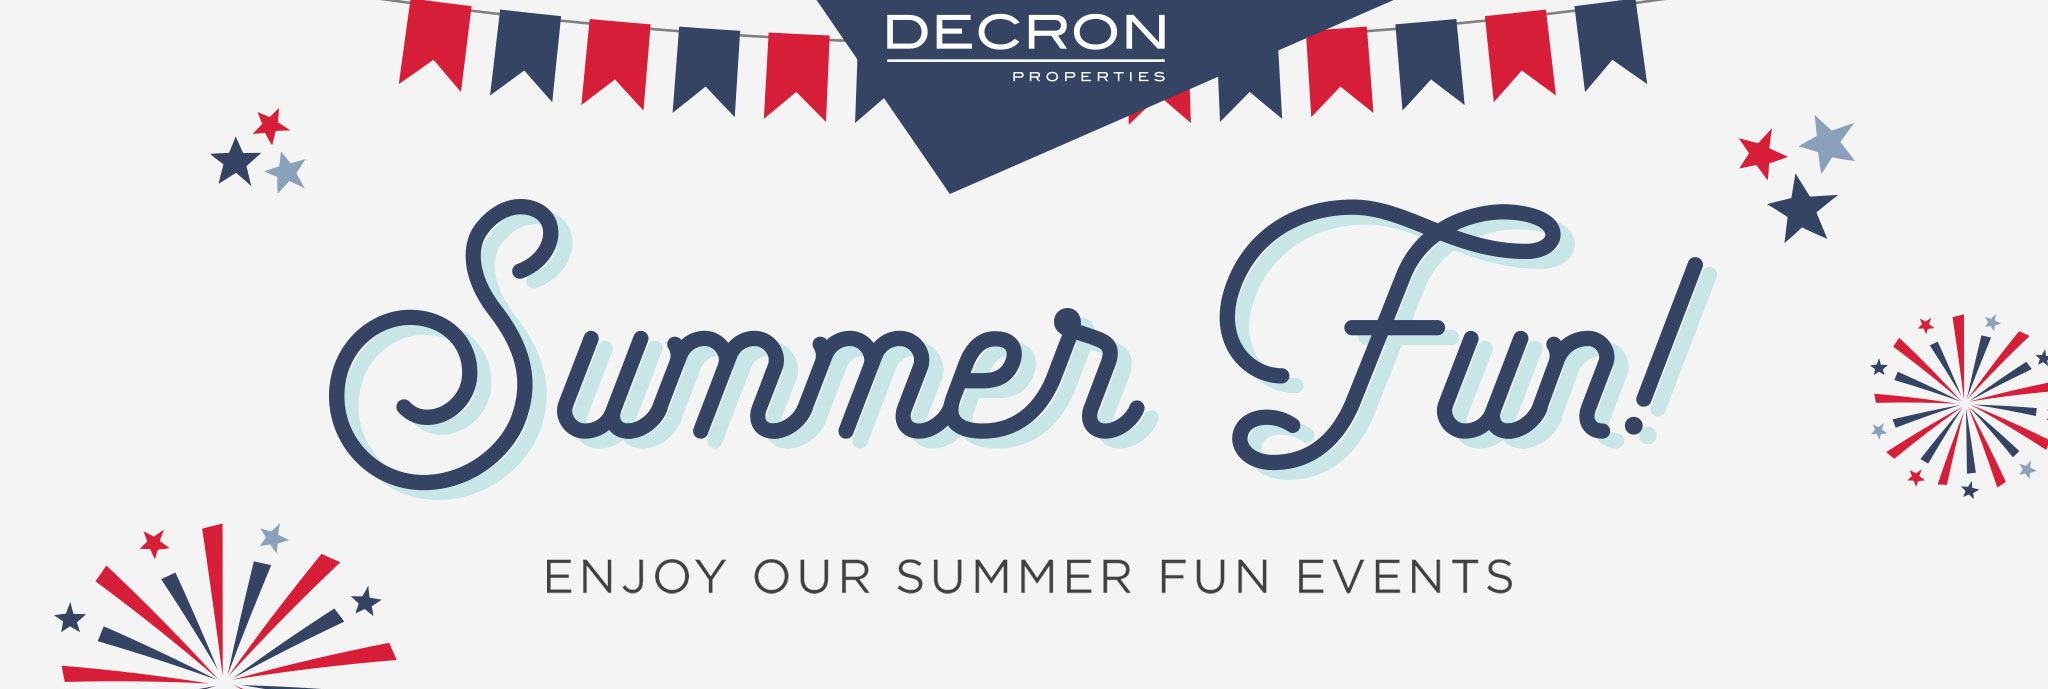 Decron Properties - Enjoy our Summer Fun events!